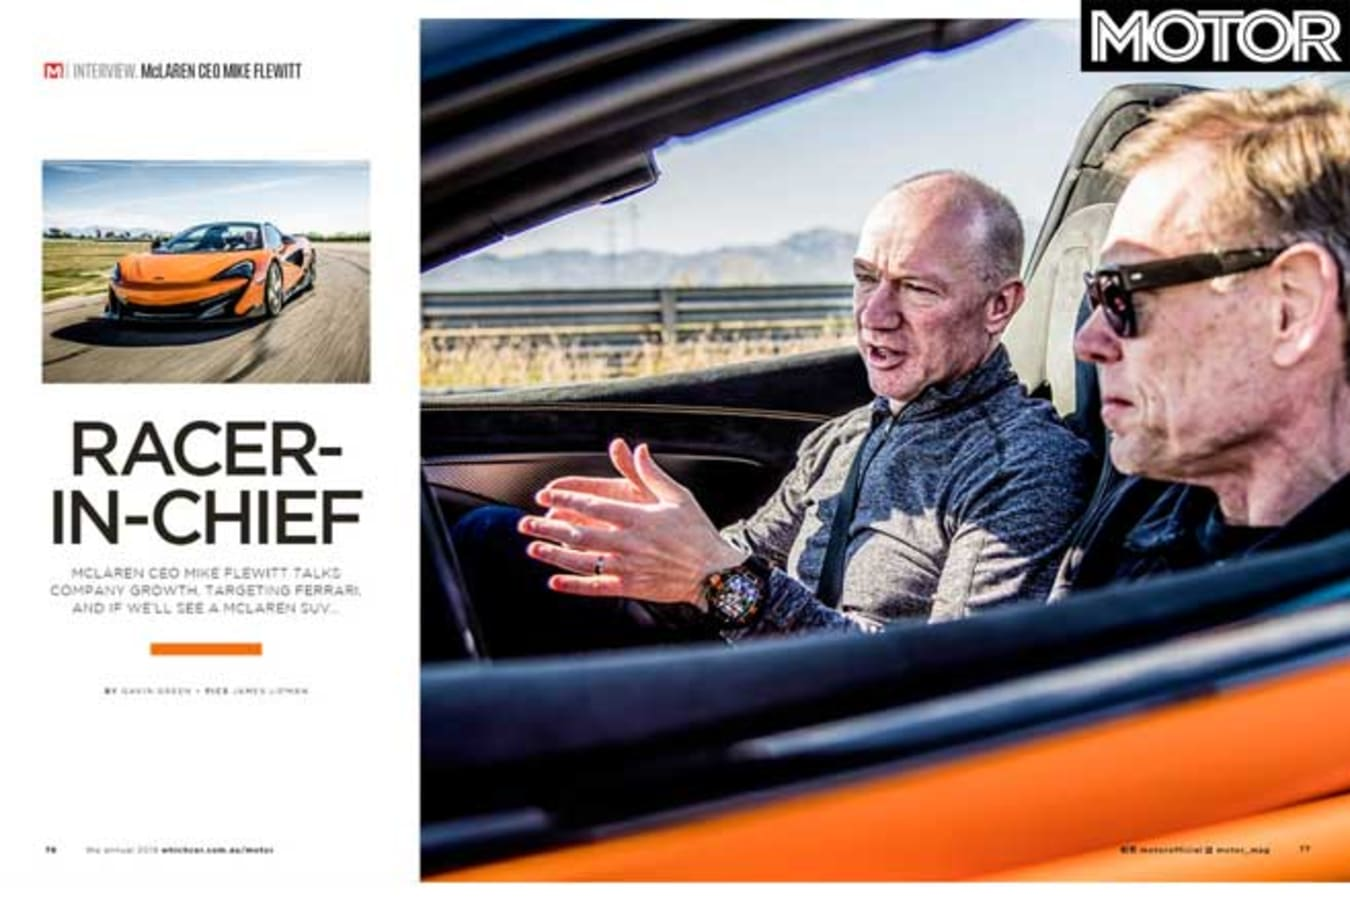 MOTOR Magazine Annual 2019 Issue An Interview With Mc Laren CEO Jpg